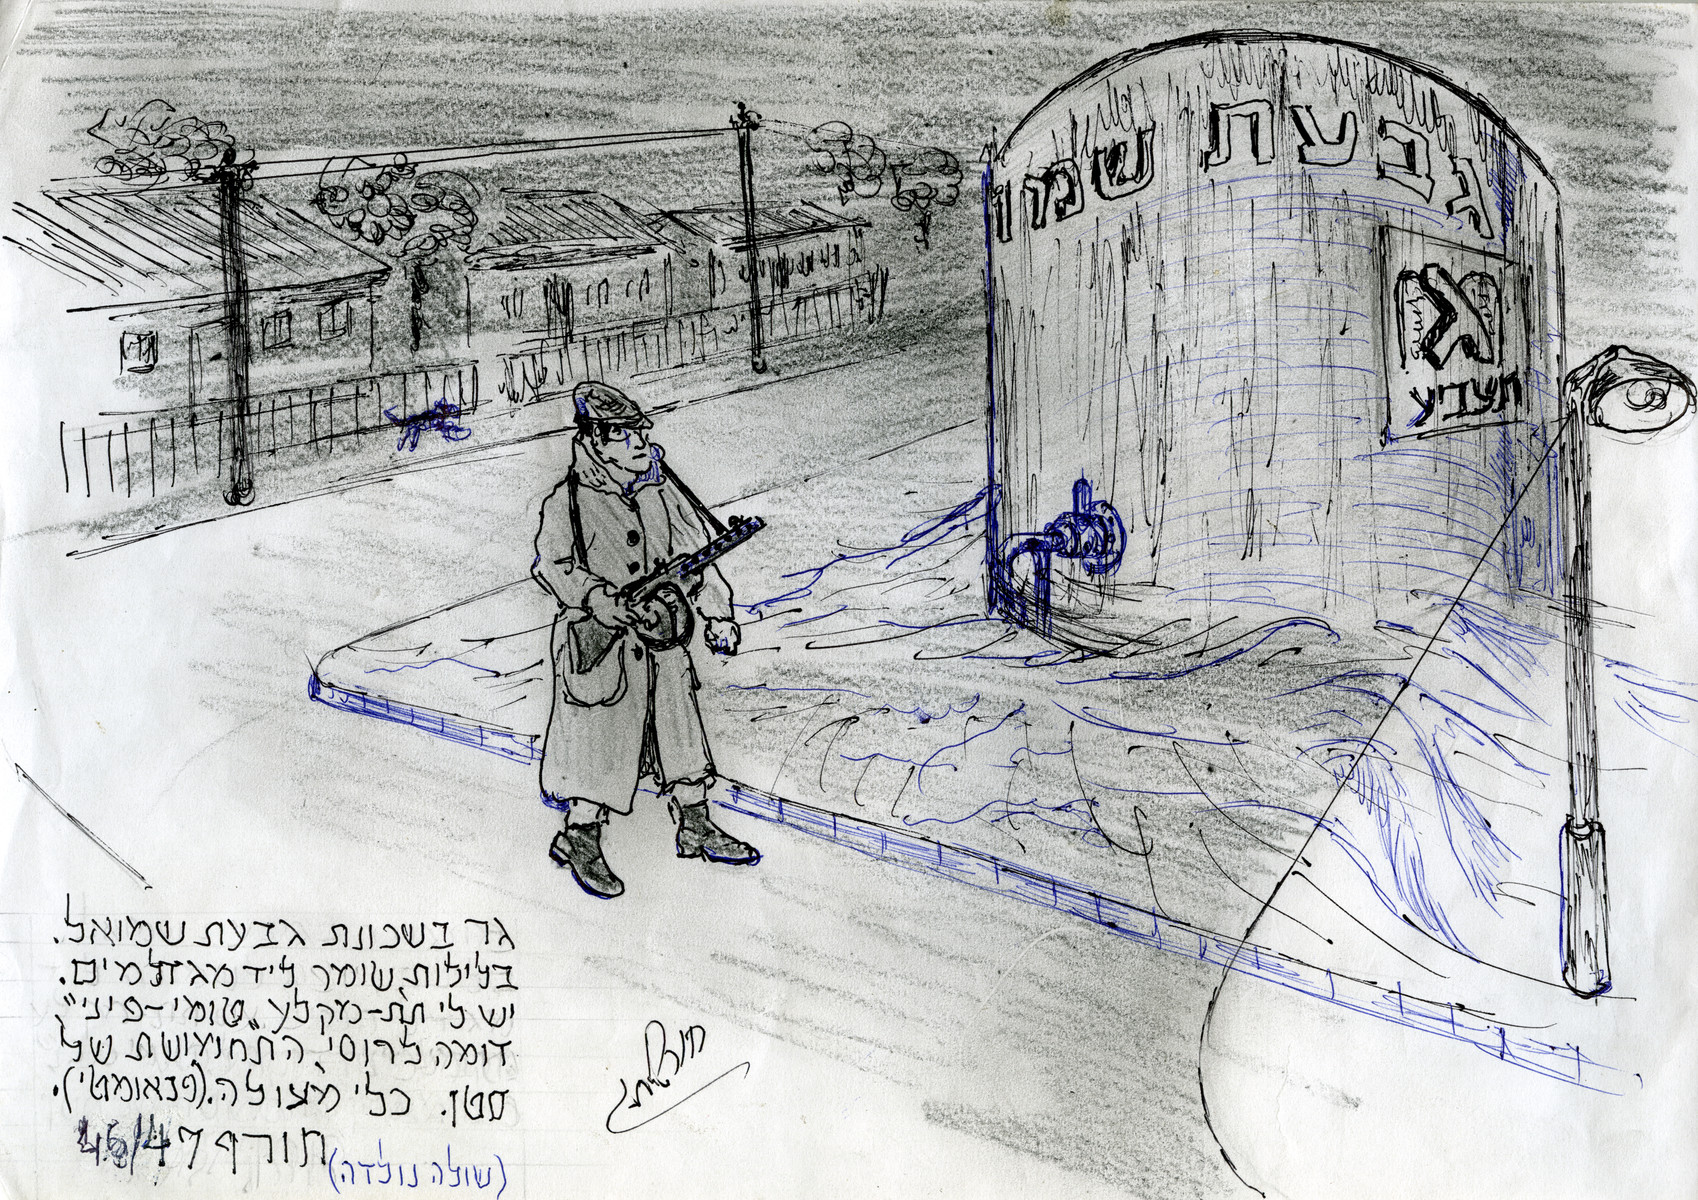 Page of a pictoral memoir drawn by the donor documenting his experiences after the Holocaust.  The drawing depicts the donor standing guard over a water tower in Givat Shmuel shortly after his immigration to Palestine.